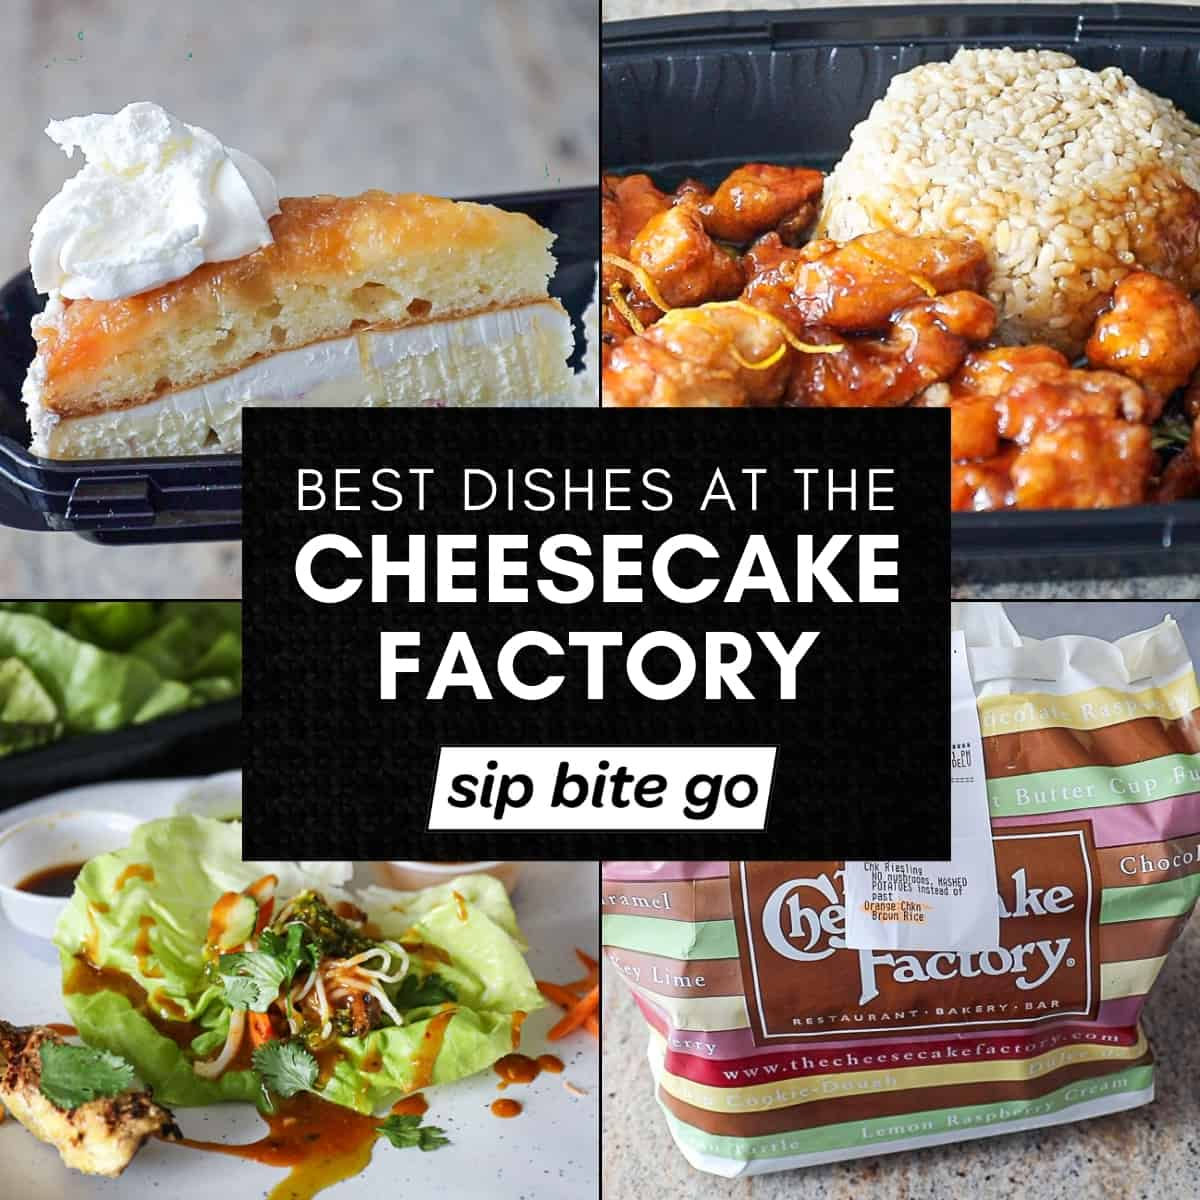 Best Cheesecake Factory Food image collage with text overlay.